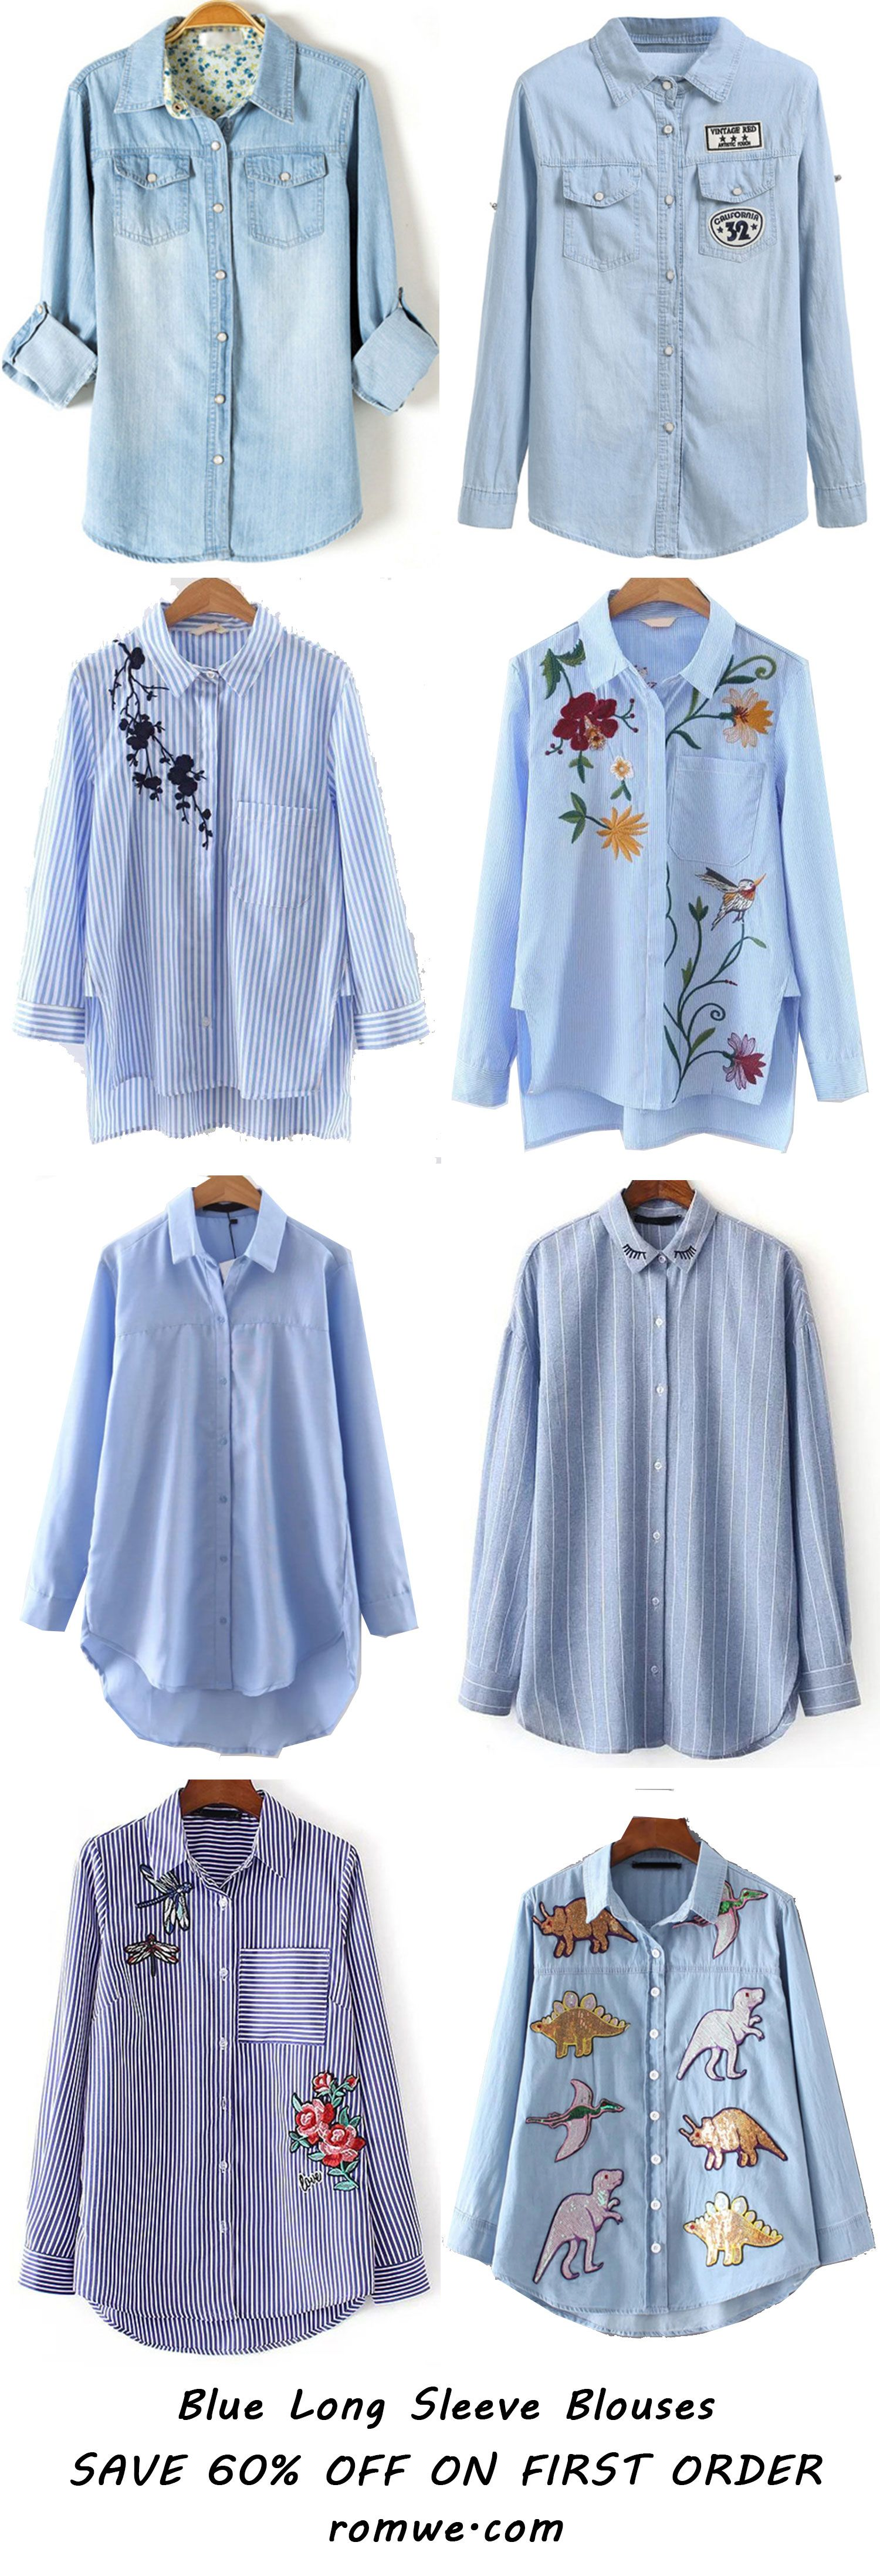 Pure Blue Blouses from romwe.com